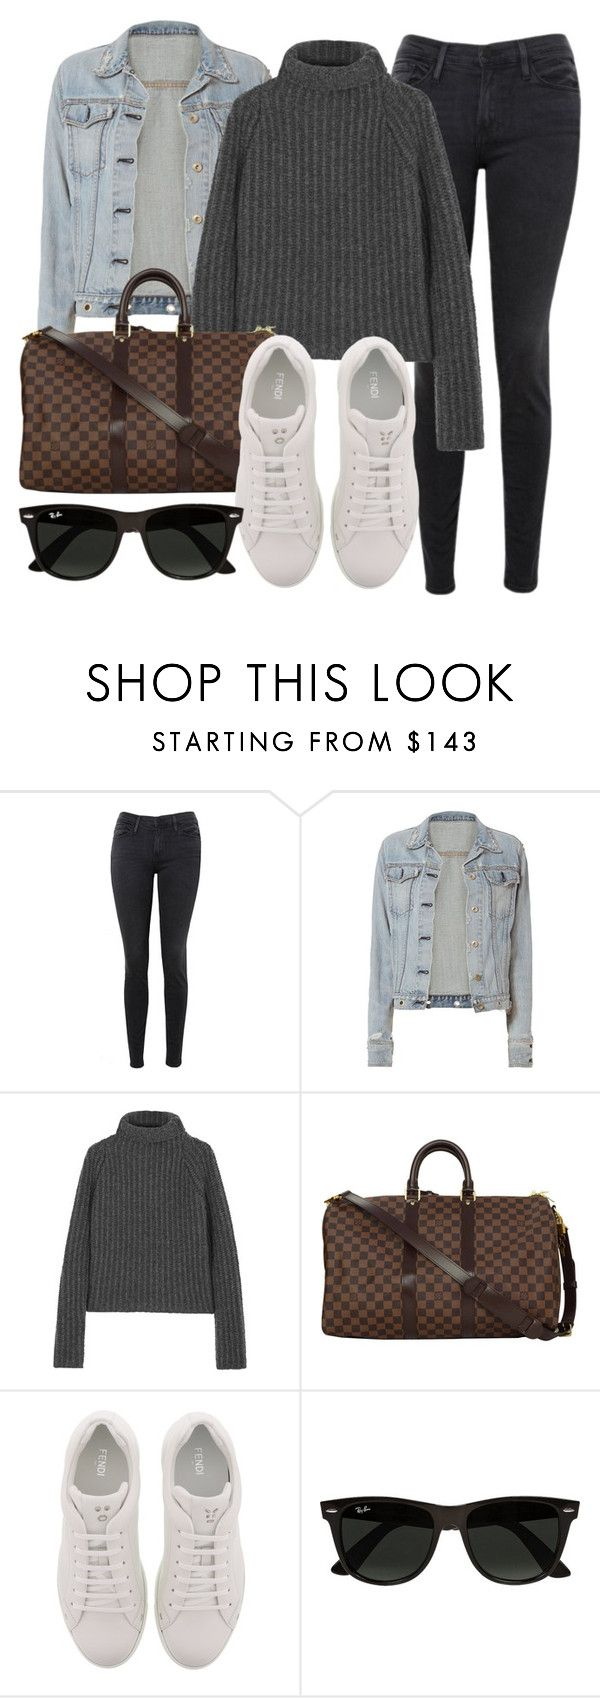 """""""Sin título #11838"""" by vany-alvarado ❤ liked on Polyvore featuring Frame, rag & bone, Haider Ackermann, Louis Vuitton, Fendi and Ray-Ban"""